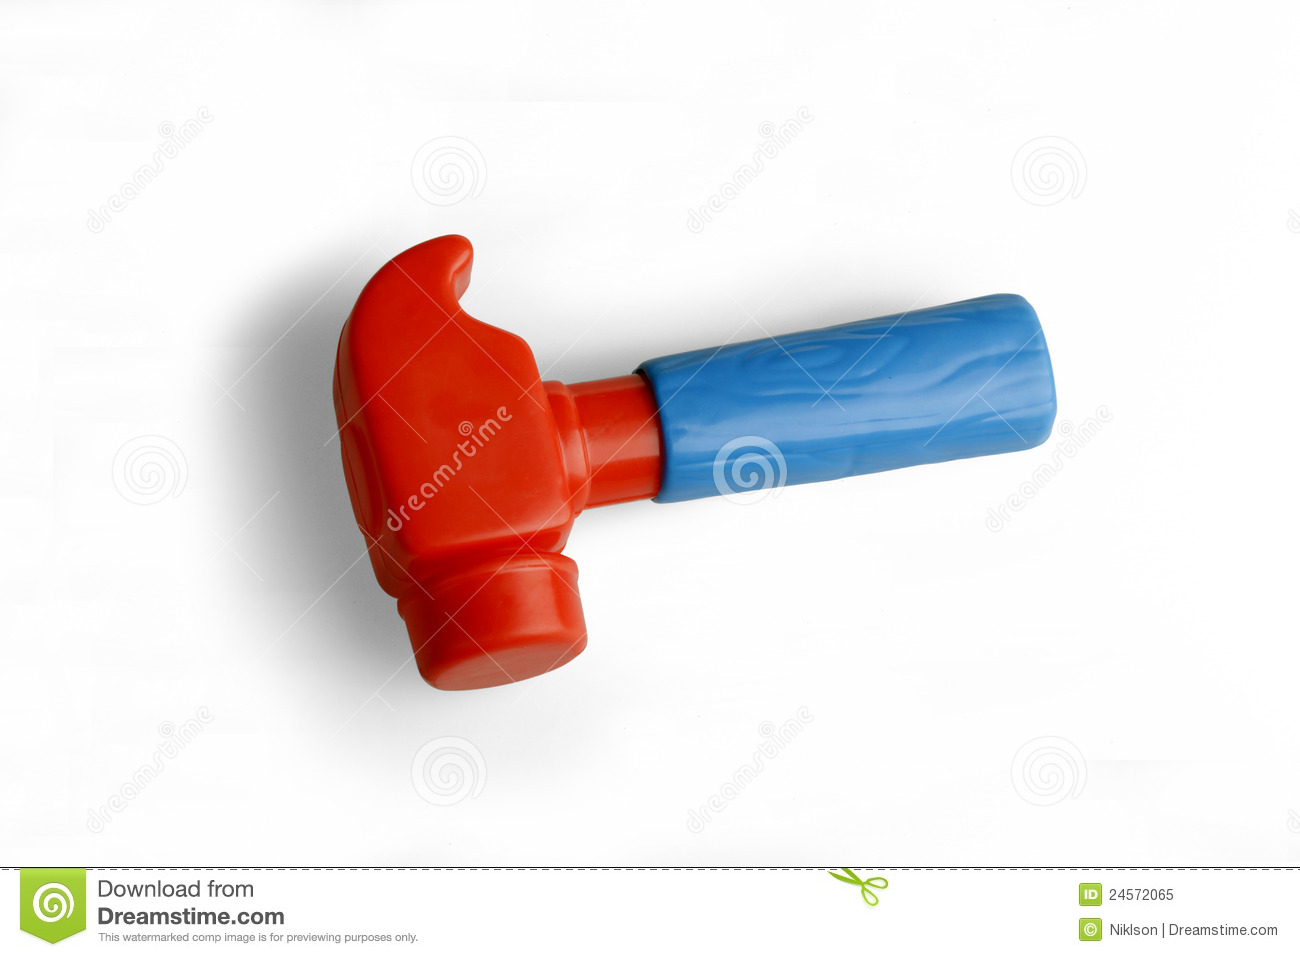 Hammer, A Plastic Toy Royalty Free Stock Photo - Image: 24572065